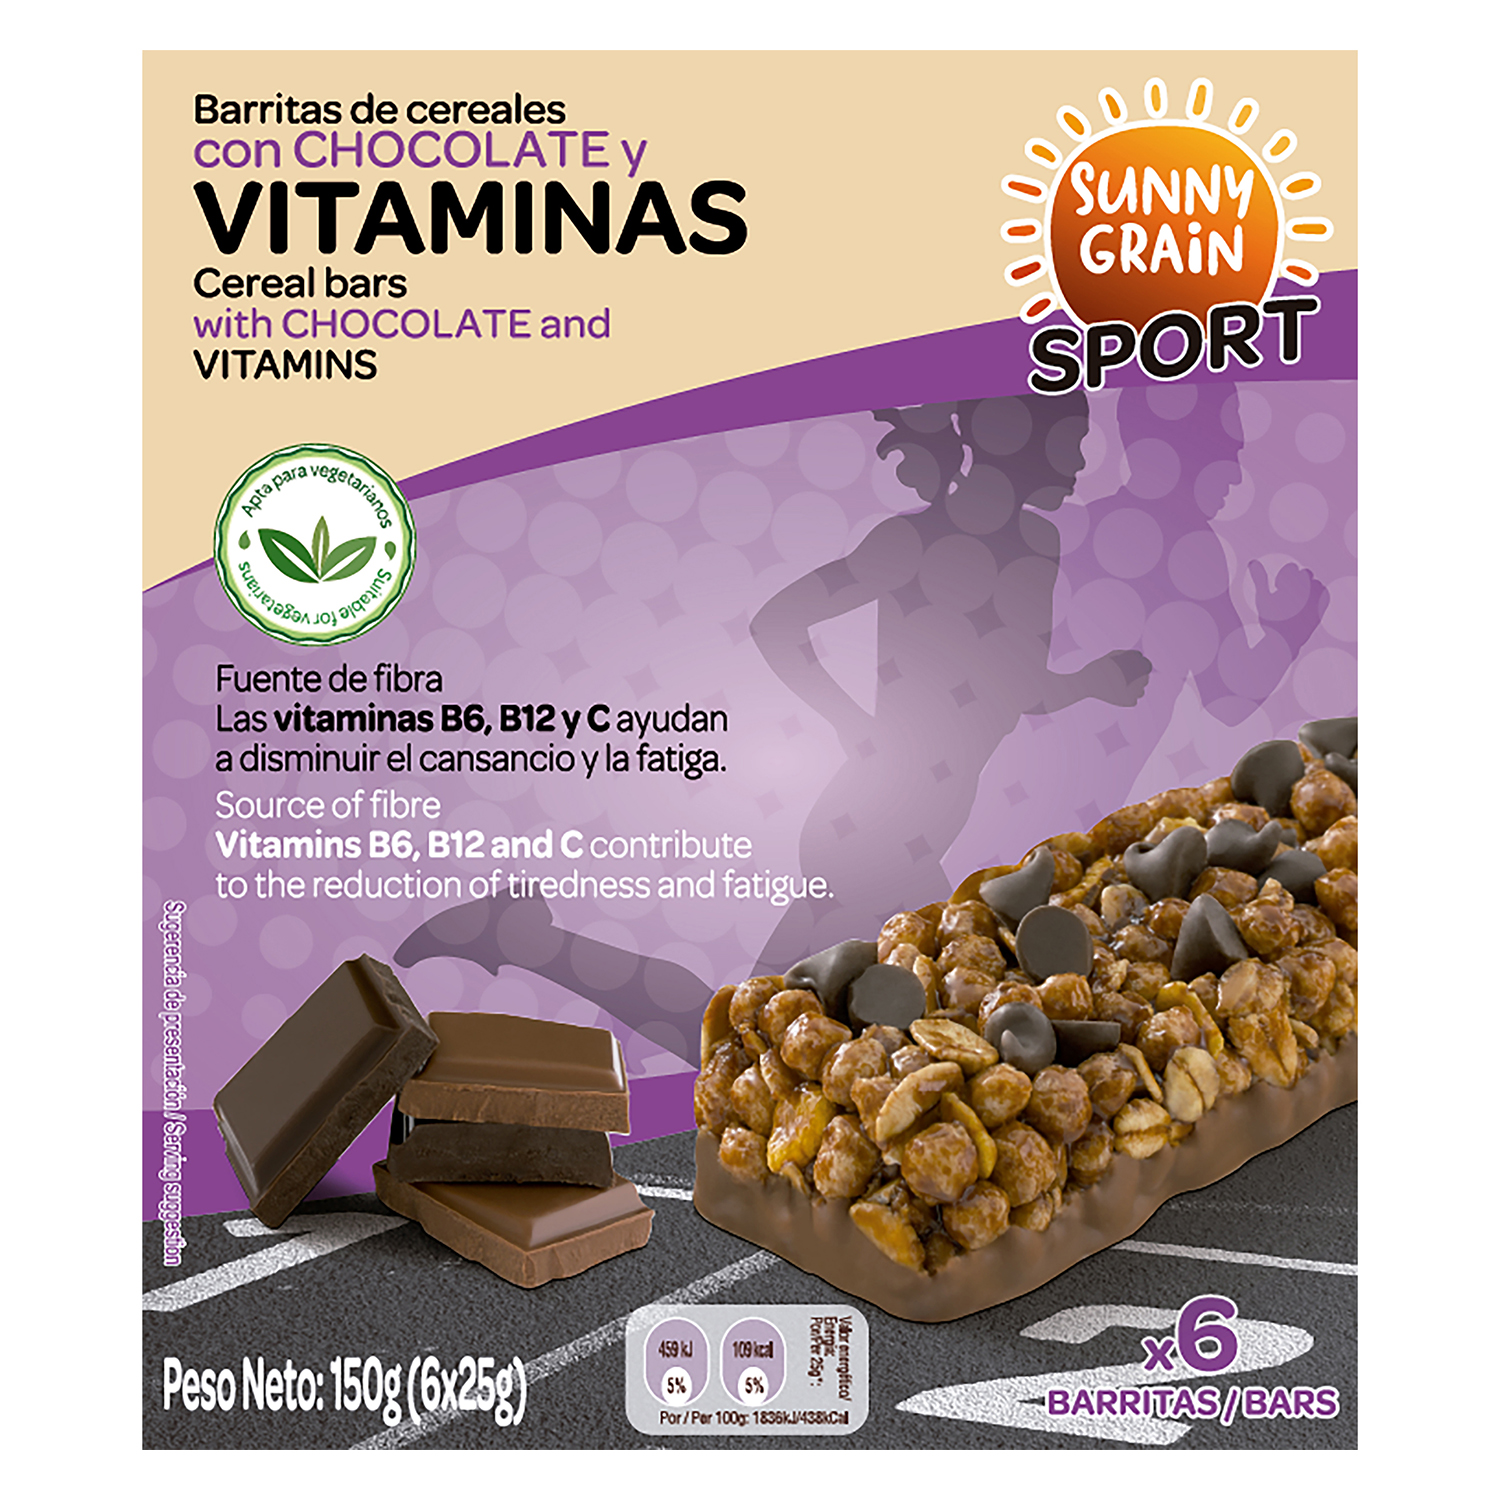 Barritas de cereales con vitaminas y chocolate